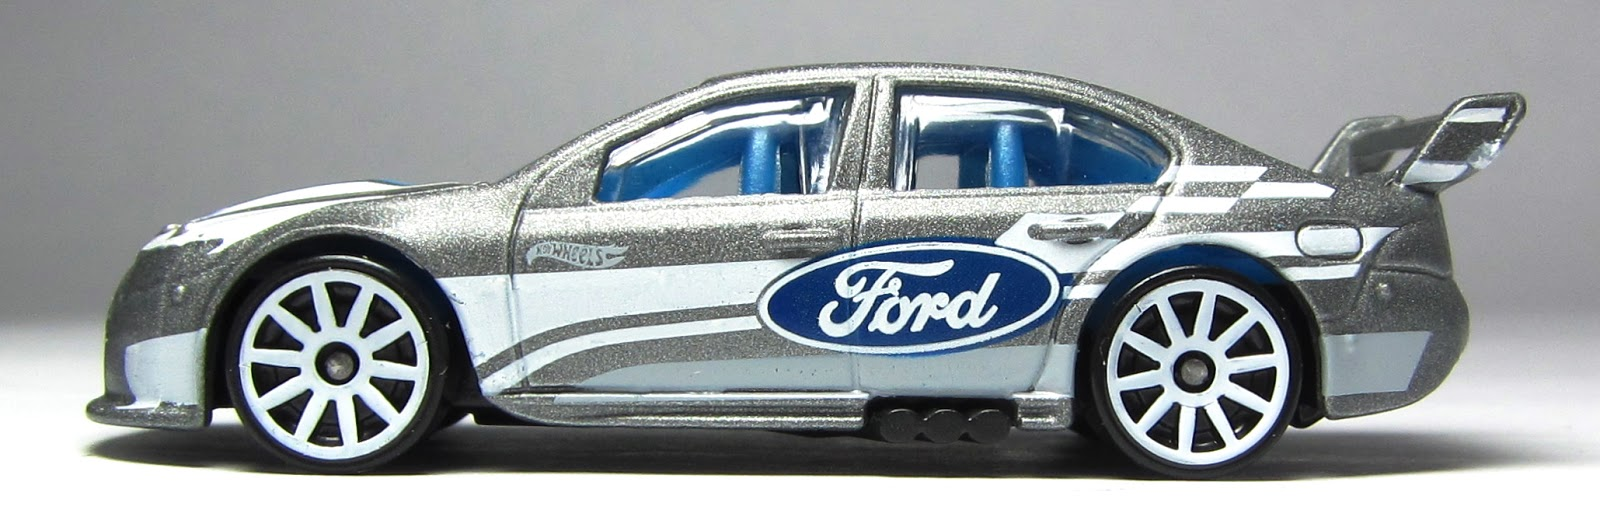 First Look Hot Wheels Ford Falcon Race Car Multipack Exclusive In